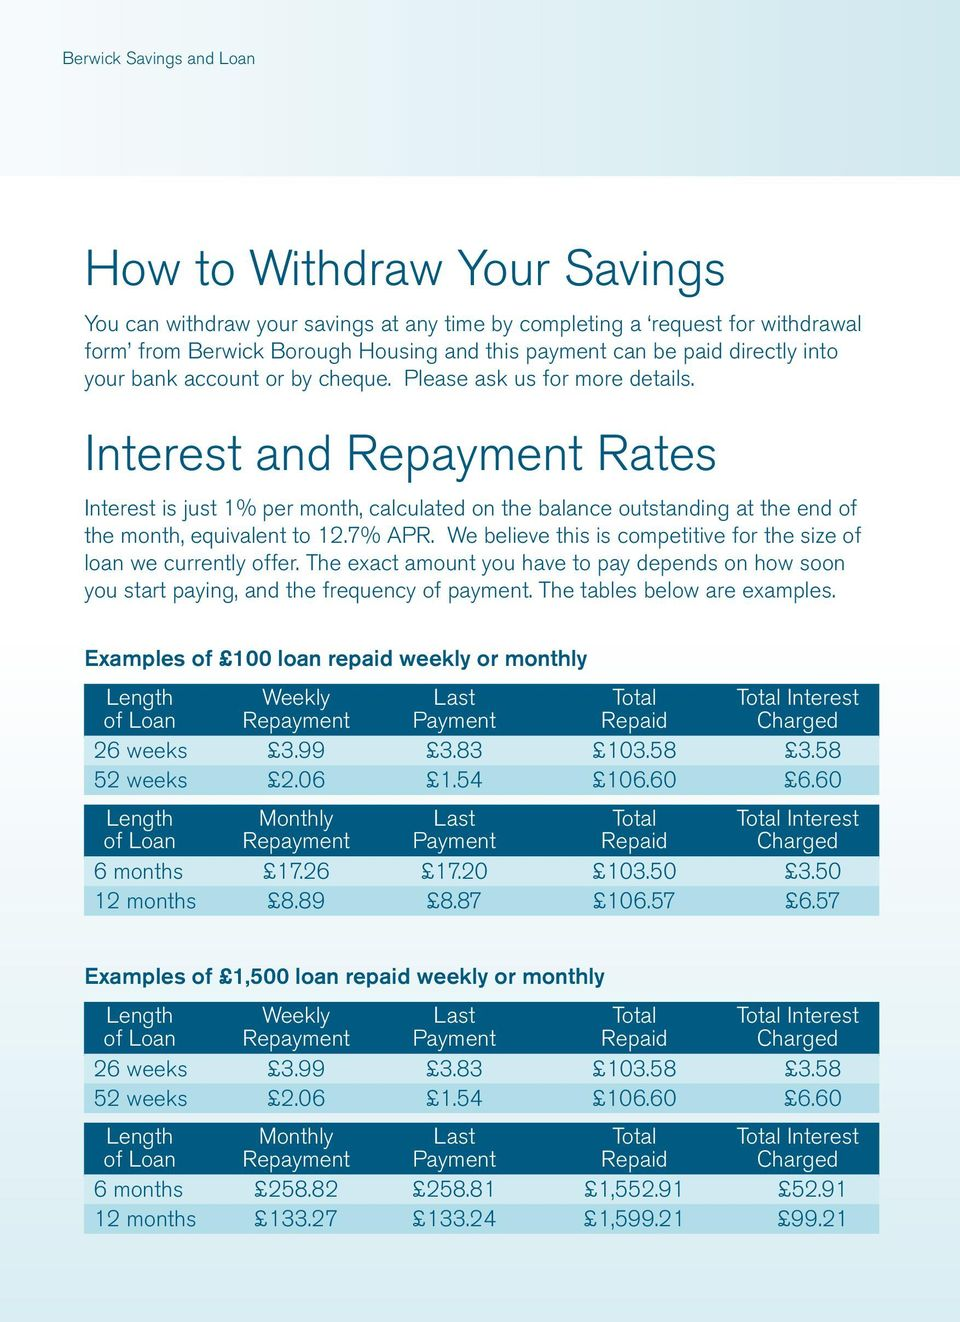 Interest and Repayment Rates Interest is just 1% per month, calculated on the balance outstanding at the end of the month, equivalent to 12.7% APR.